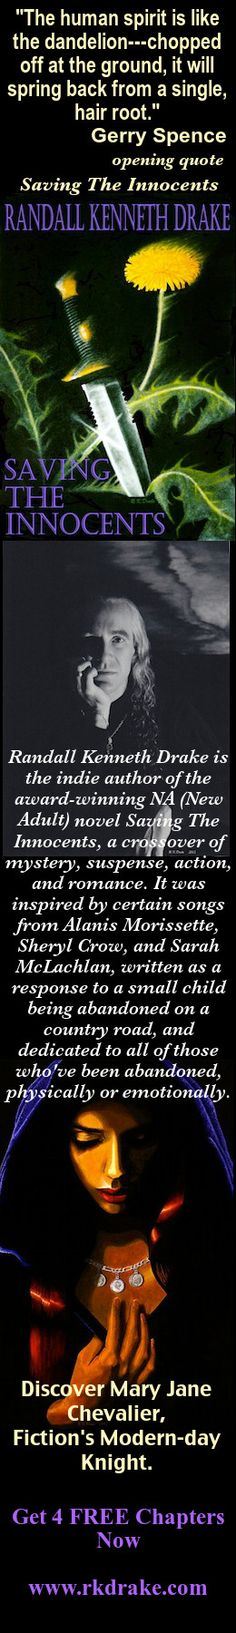 Quote from the award-winning NA new adult genre digital novel Saving The Innocents, a crossover of mystery, suspense, action, and romance. Novel inspired by certain songs from Alanis Morissette, Sheryl Crow, and Sarah McLachlan. To Get either 4 FREE Chapters Now, or Get the novel itself Now, Click Here www.rkdrake.com/rkd/new-adult-genre.html Send link as gift for avid readers! Sarah Mclachlan, Saving Quotes, Alanis Morissette, Open Quotes, Sheryl Crow, Romance Novels, Great Books, Crossover, Indie